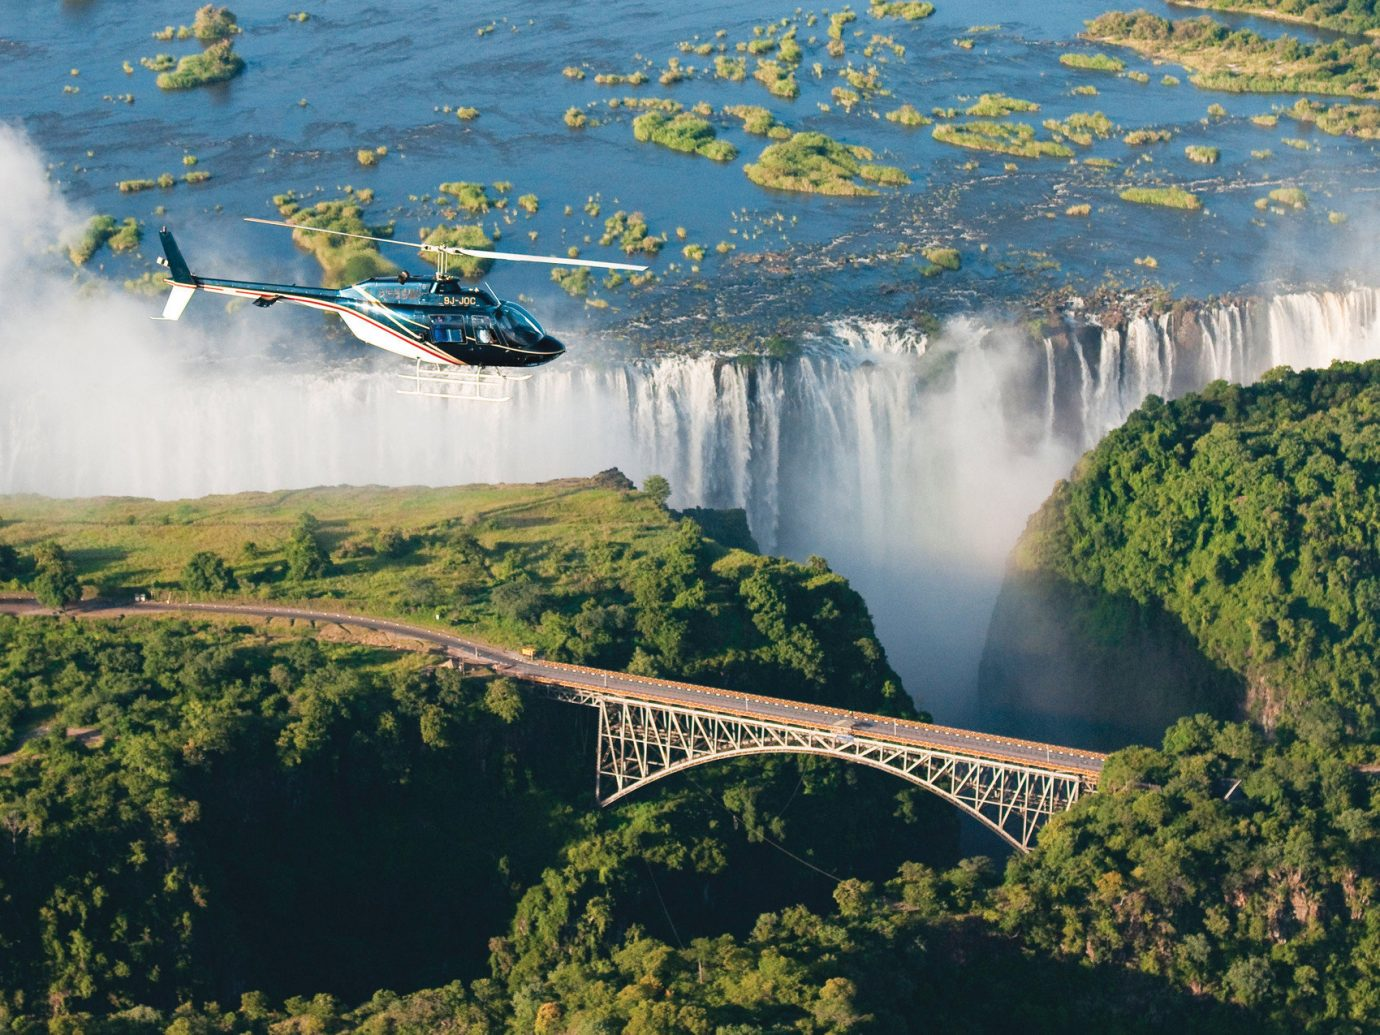 Offbeat Trip Ideas tree outdoor Nature reflection atmospheric phenomenon water aerial photography body of water River atmosphere of earth reservoir morning Lake bridge landscape water feature